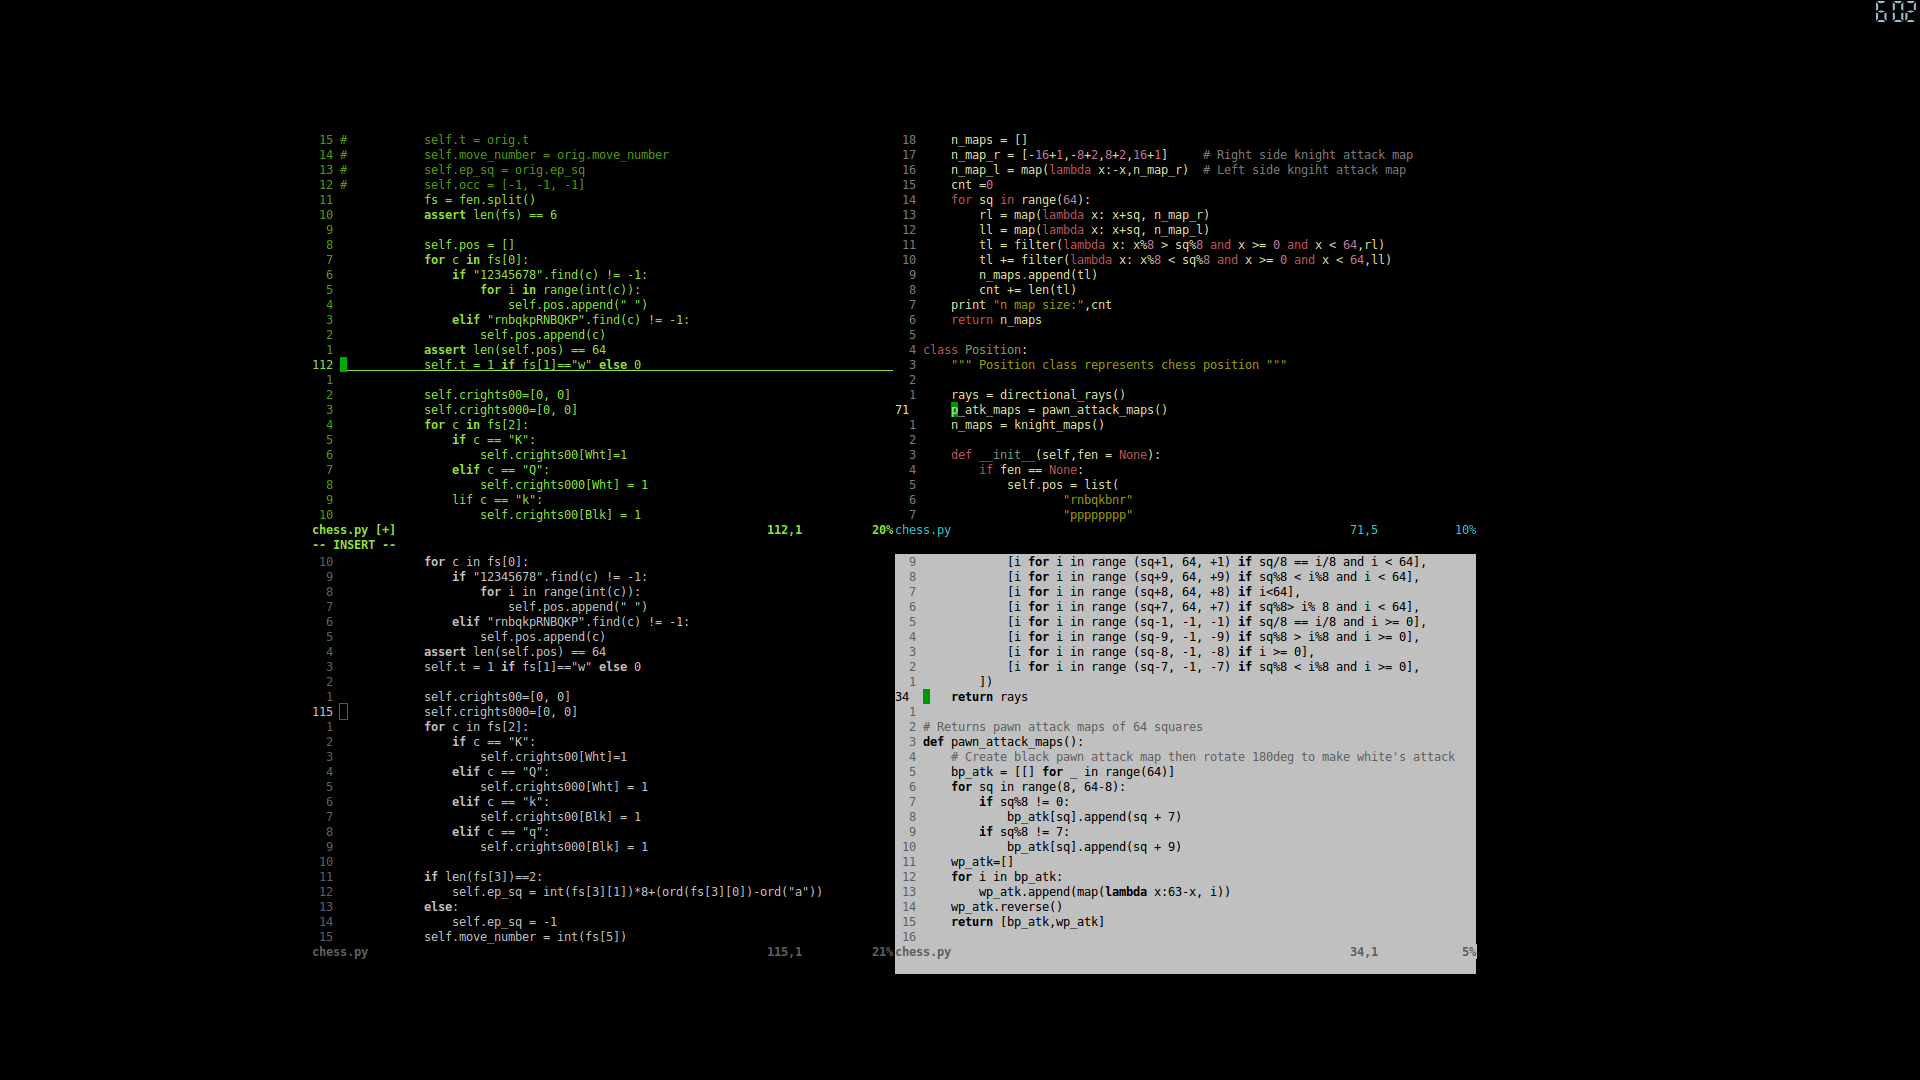 vim_themes.png